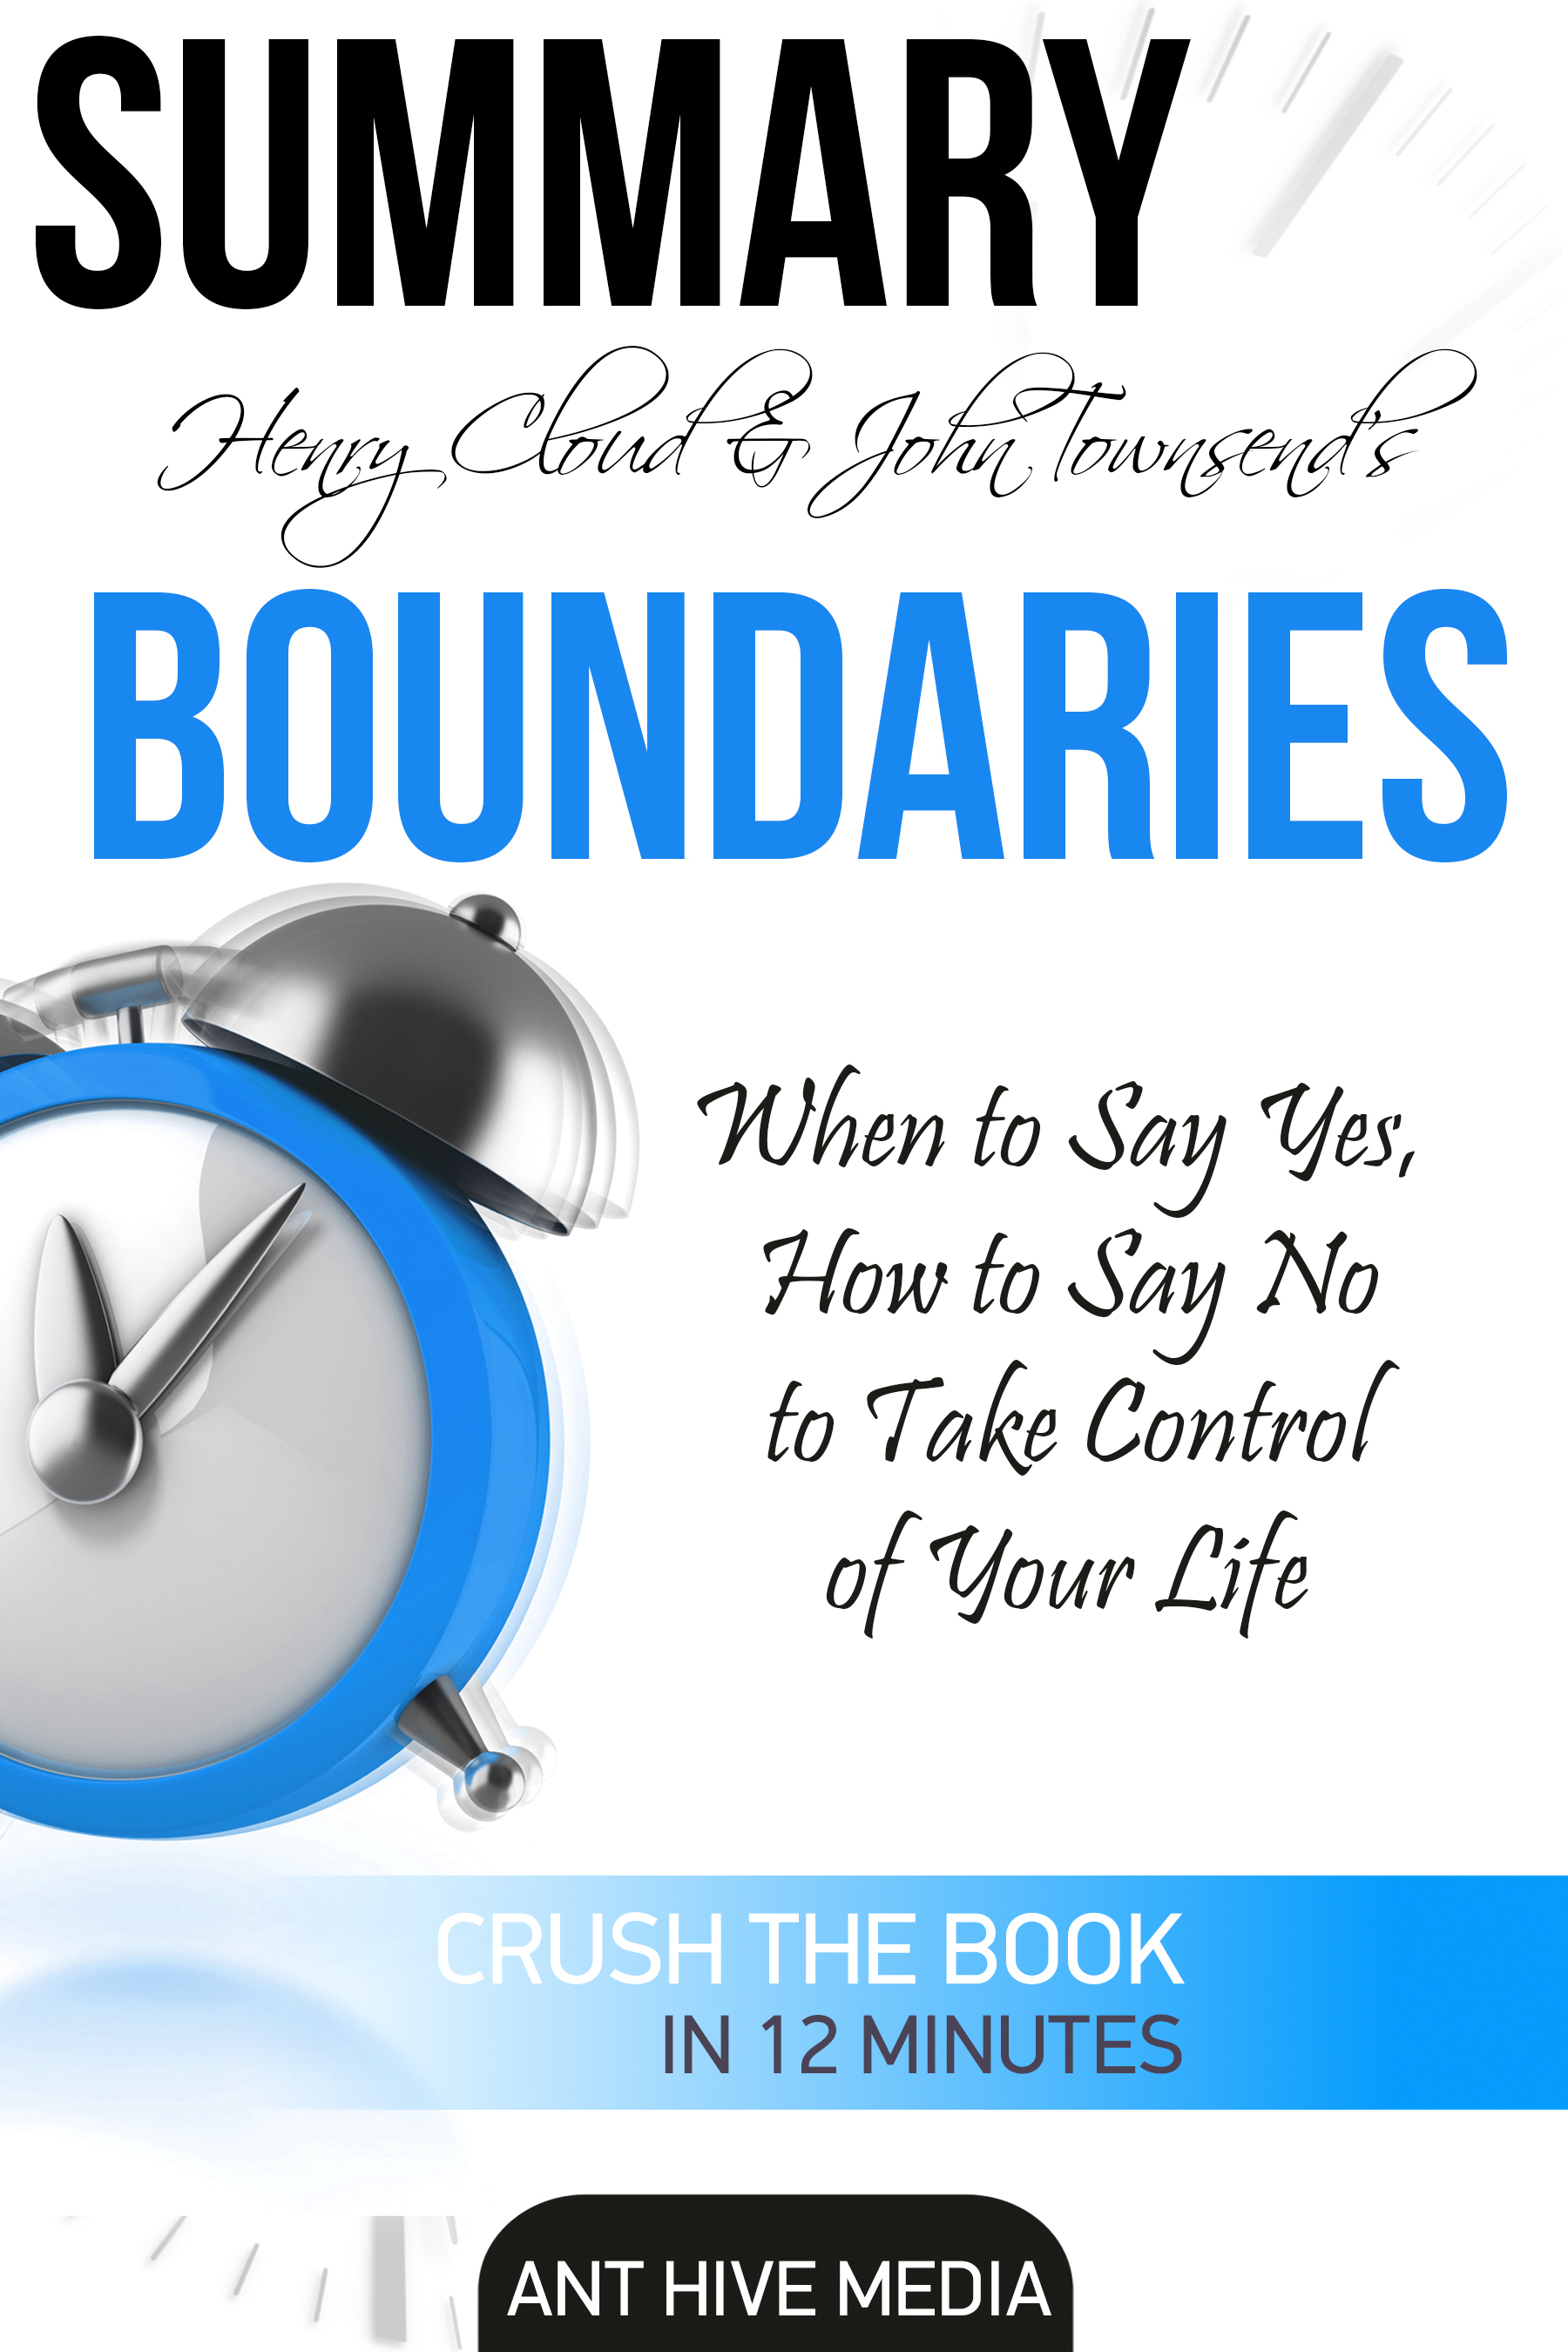 Henry Cloud  John Townsend's Boundaries When to Say Yes, How to Say No to Take Control of Your Life Summary